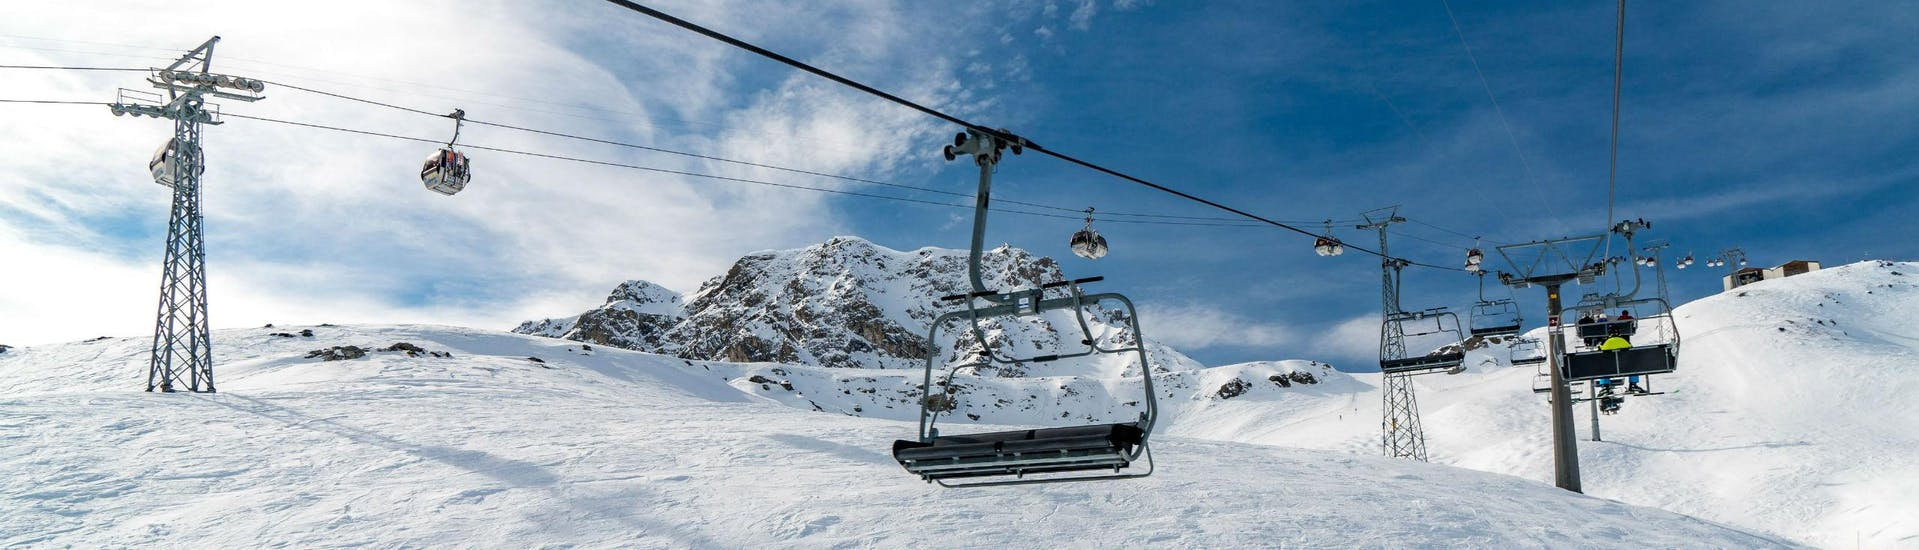 An image of a chair lift and a gondola in the Swiss ski resort of Arosa, where local ski schools offer ski lessons for all those who want to learn to ski.